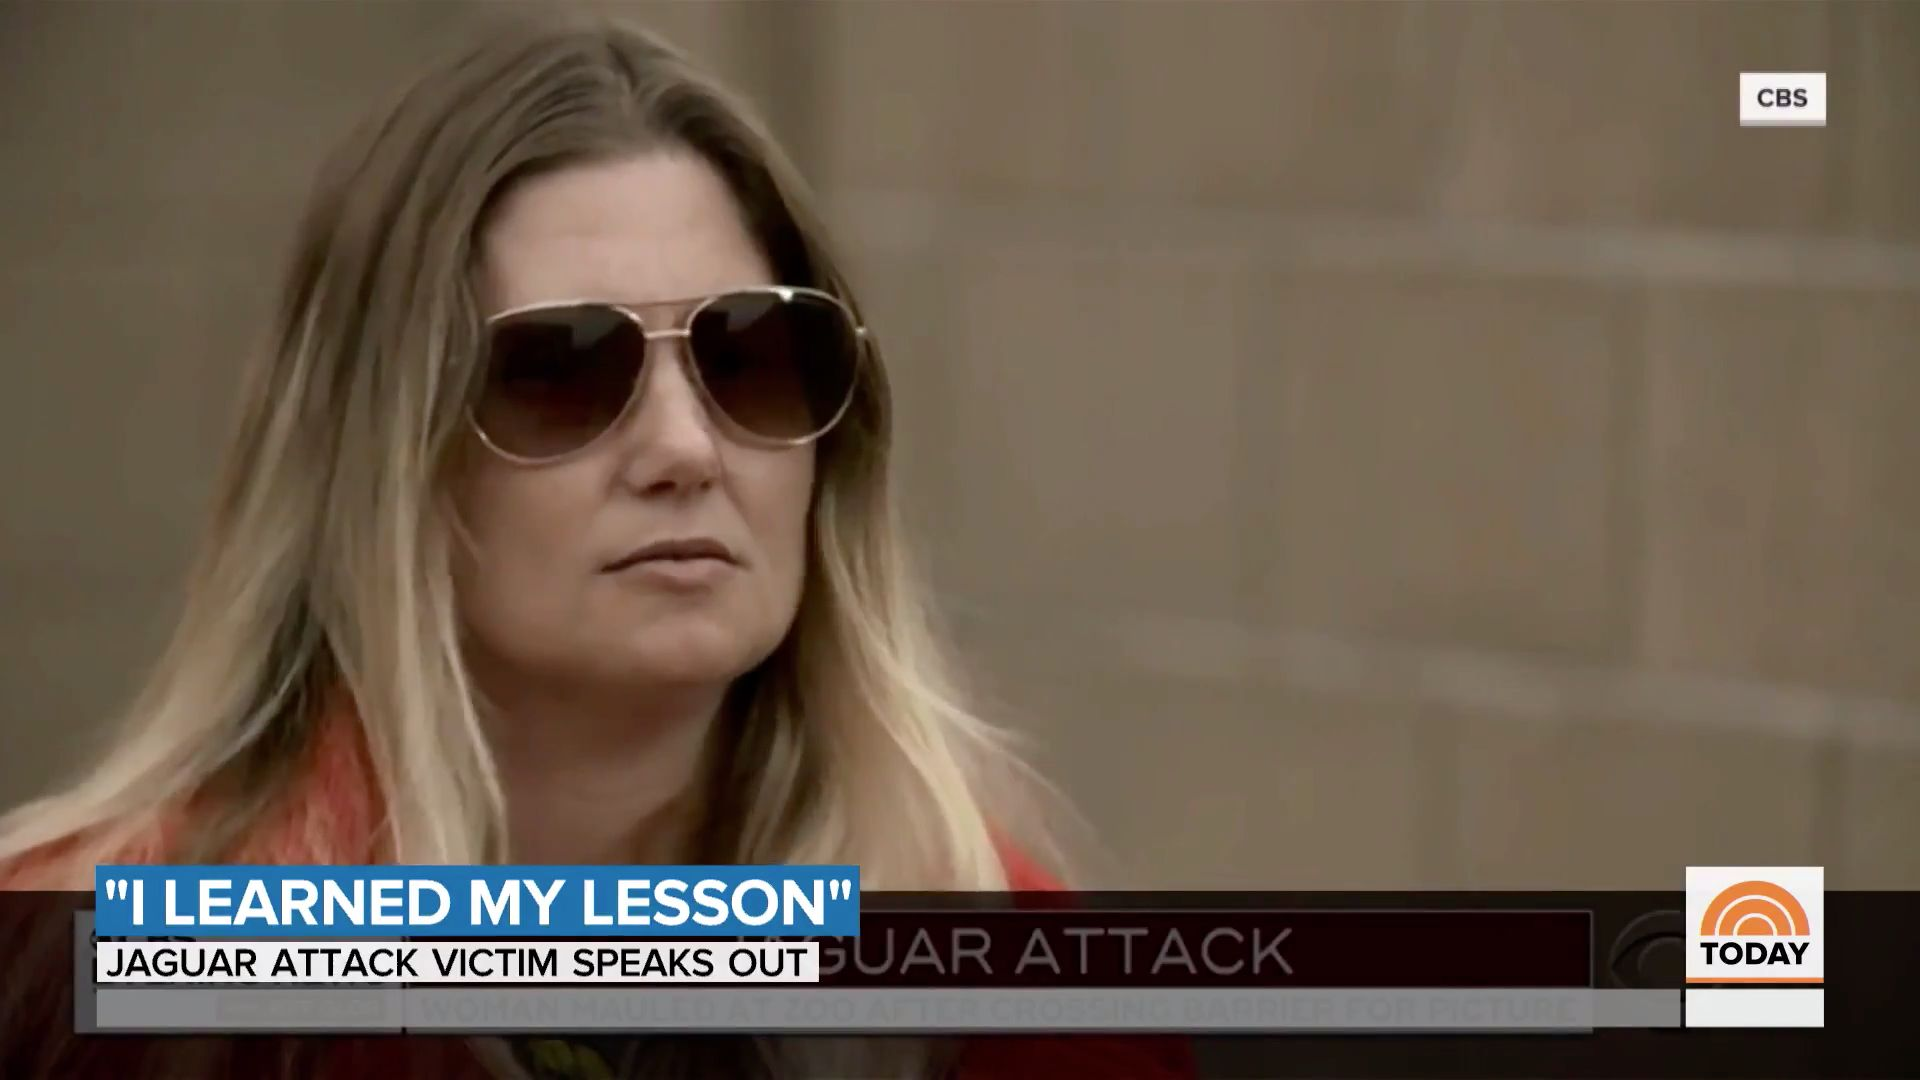 An Arizona woman who was attacked by a zoo's jaguar has apologized, saying she improperly leaned over the safety barrier for a photo.